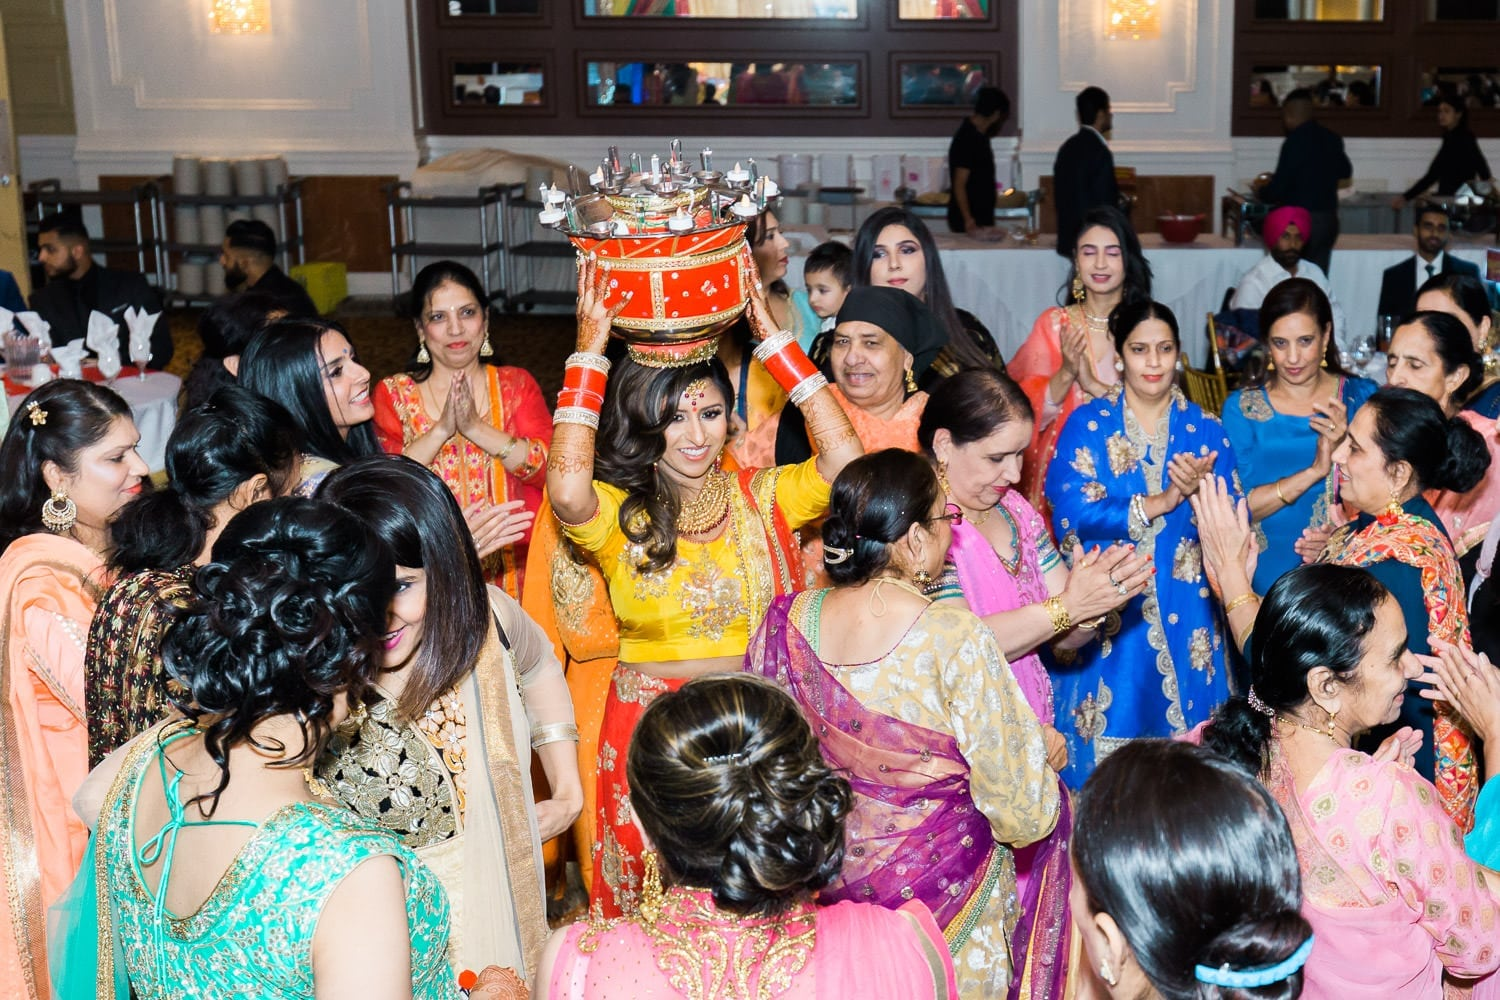 Chura and jaggo in Crown Palace Banquet Hall | Vancouver Indian wedding photographer